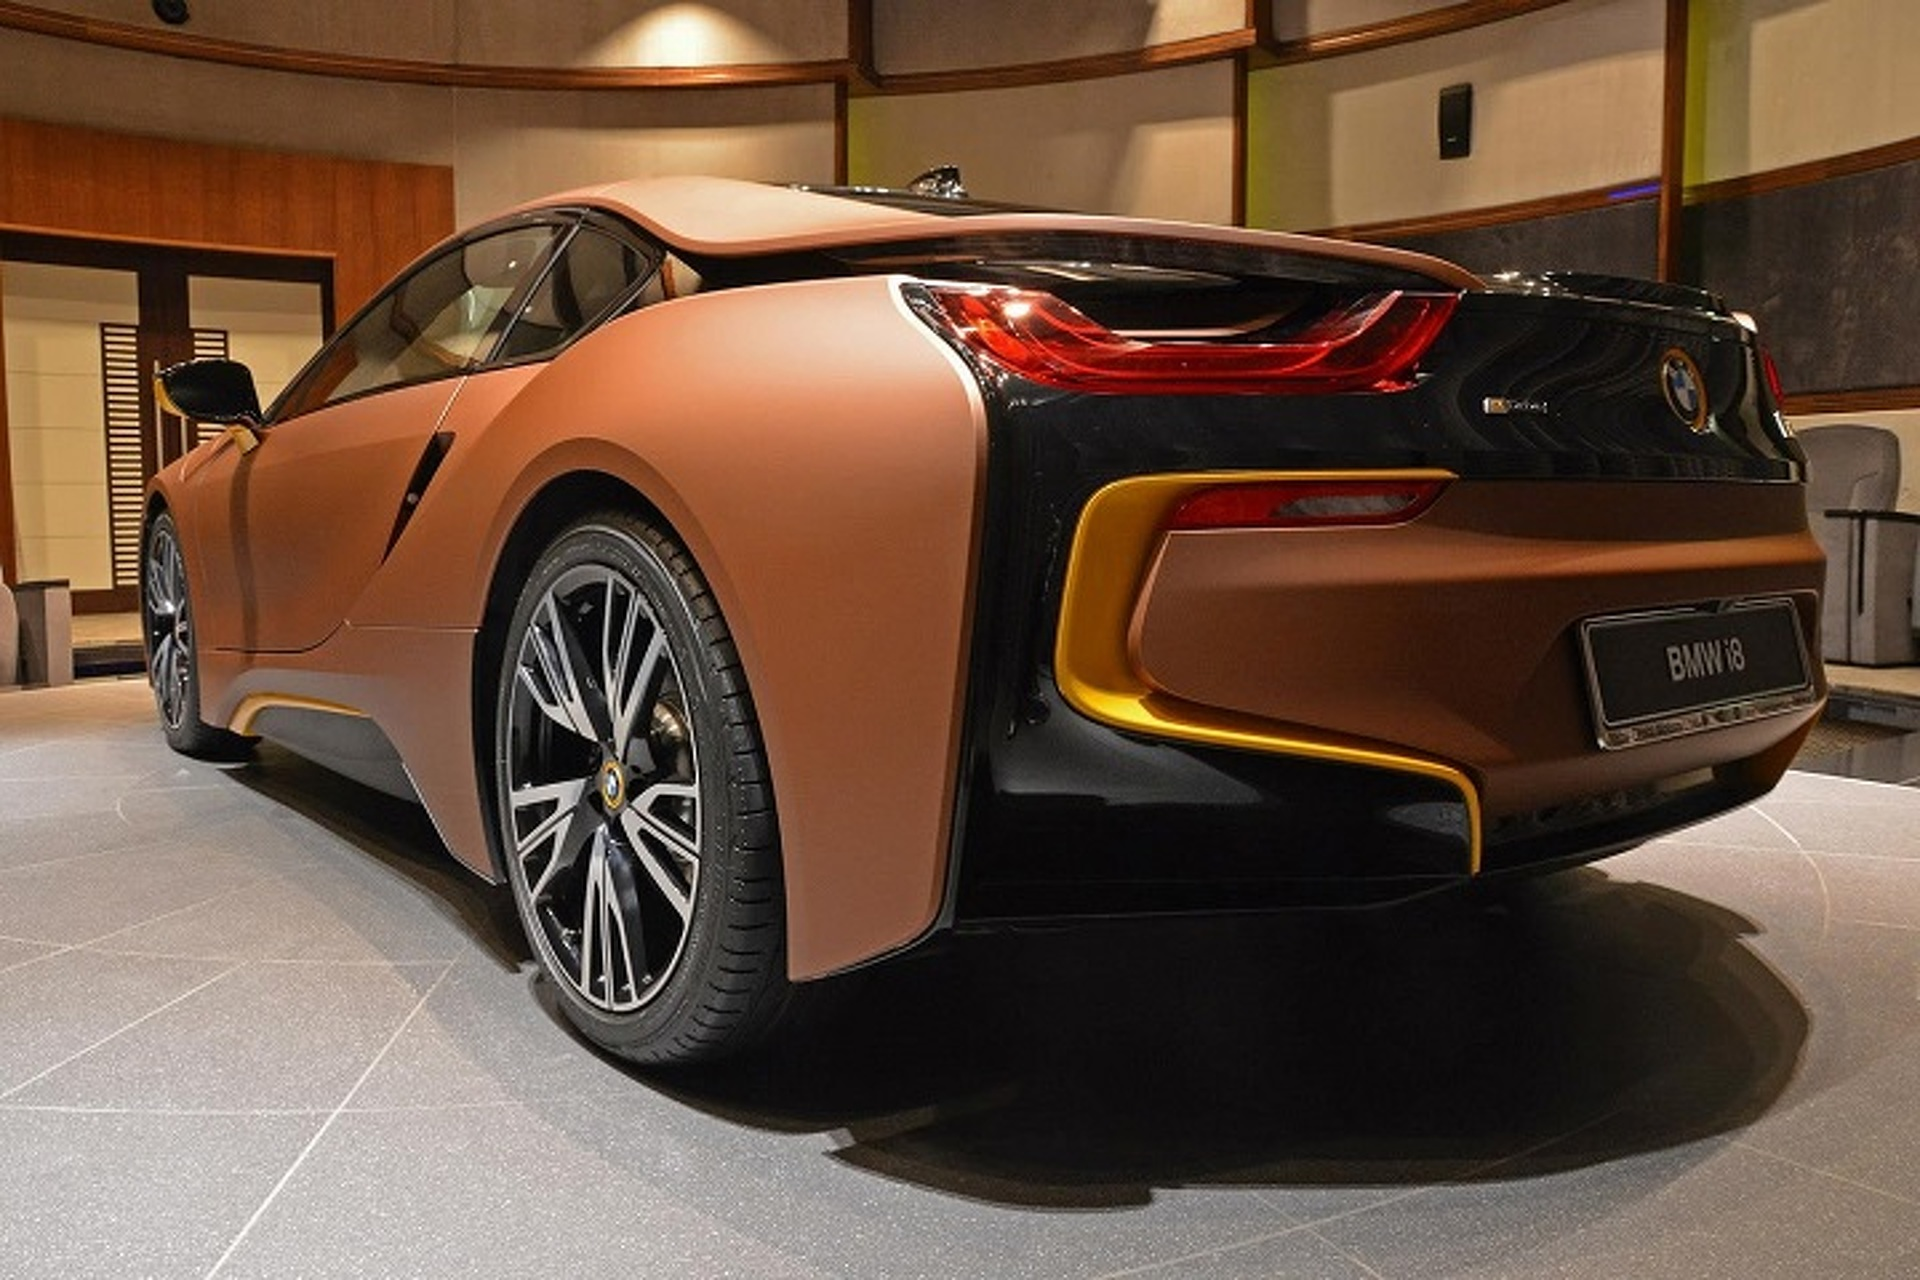 What Do You Think Of This Brown And Yellow Bmw I8